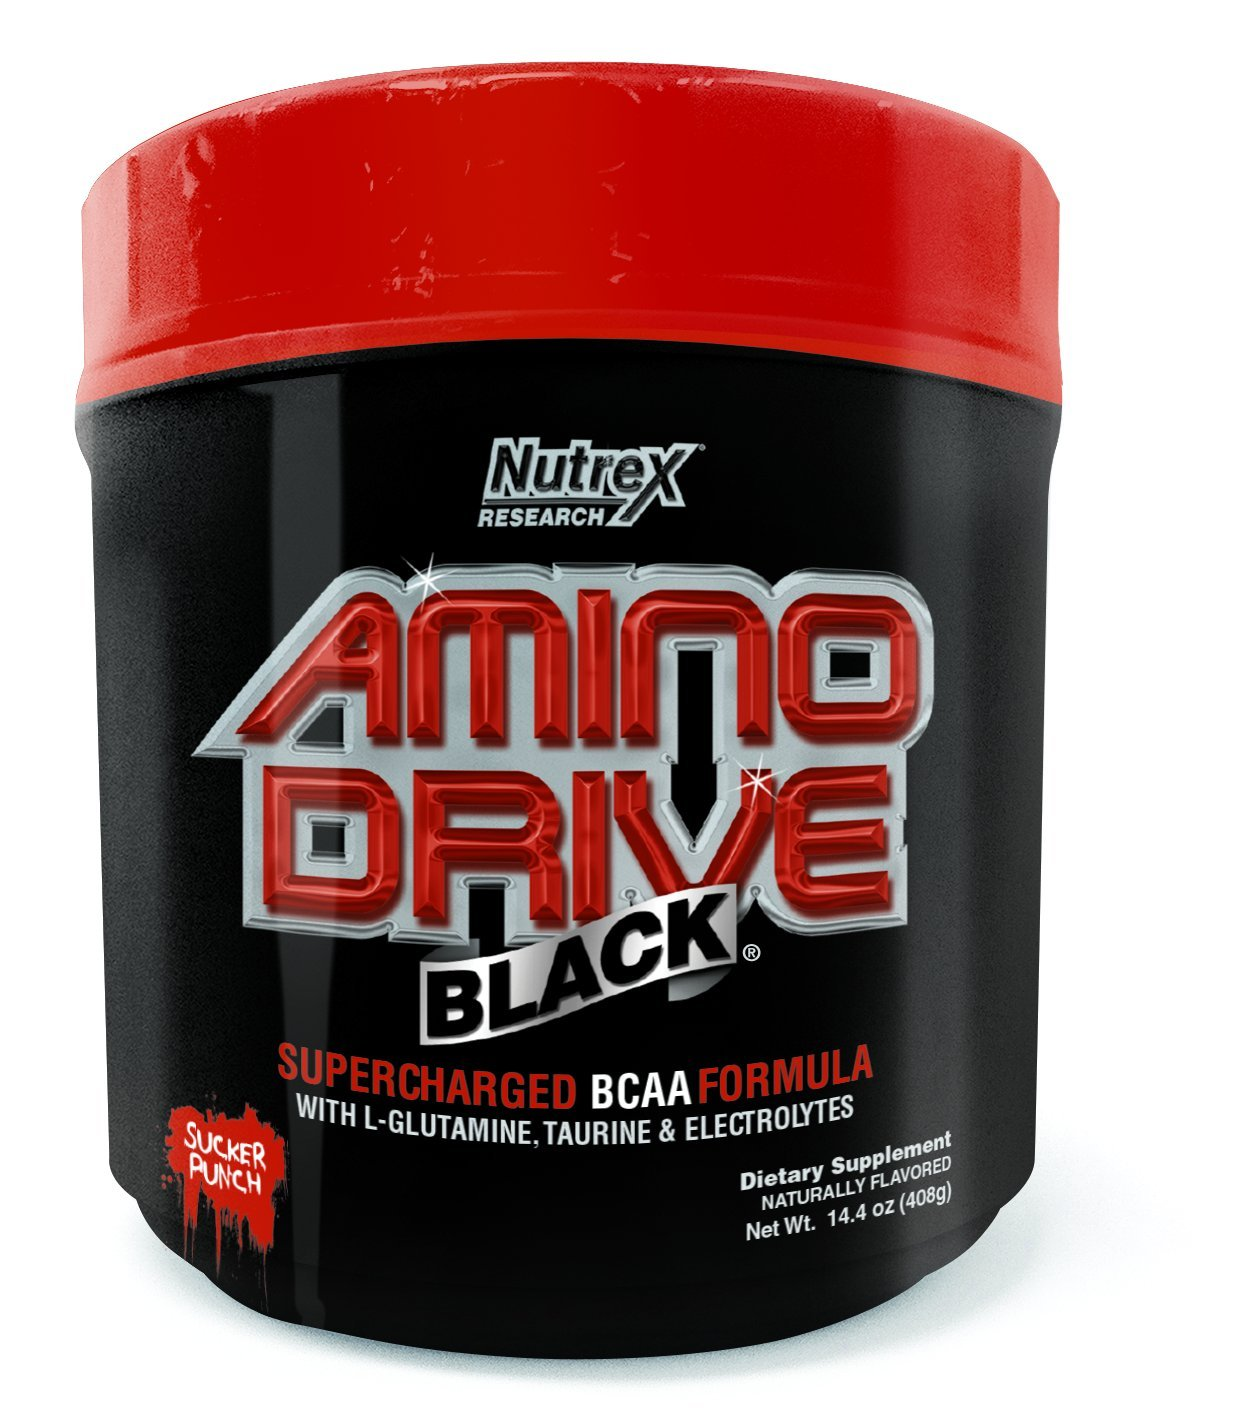 Nutrex Research Amino Drive Sucker Punch, 14.4 Ounce